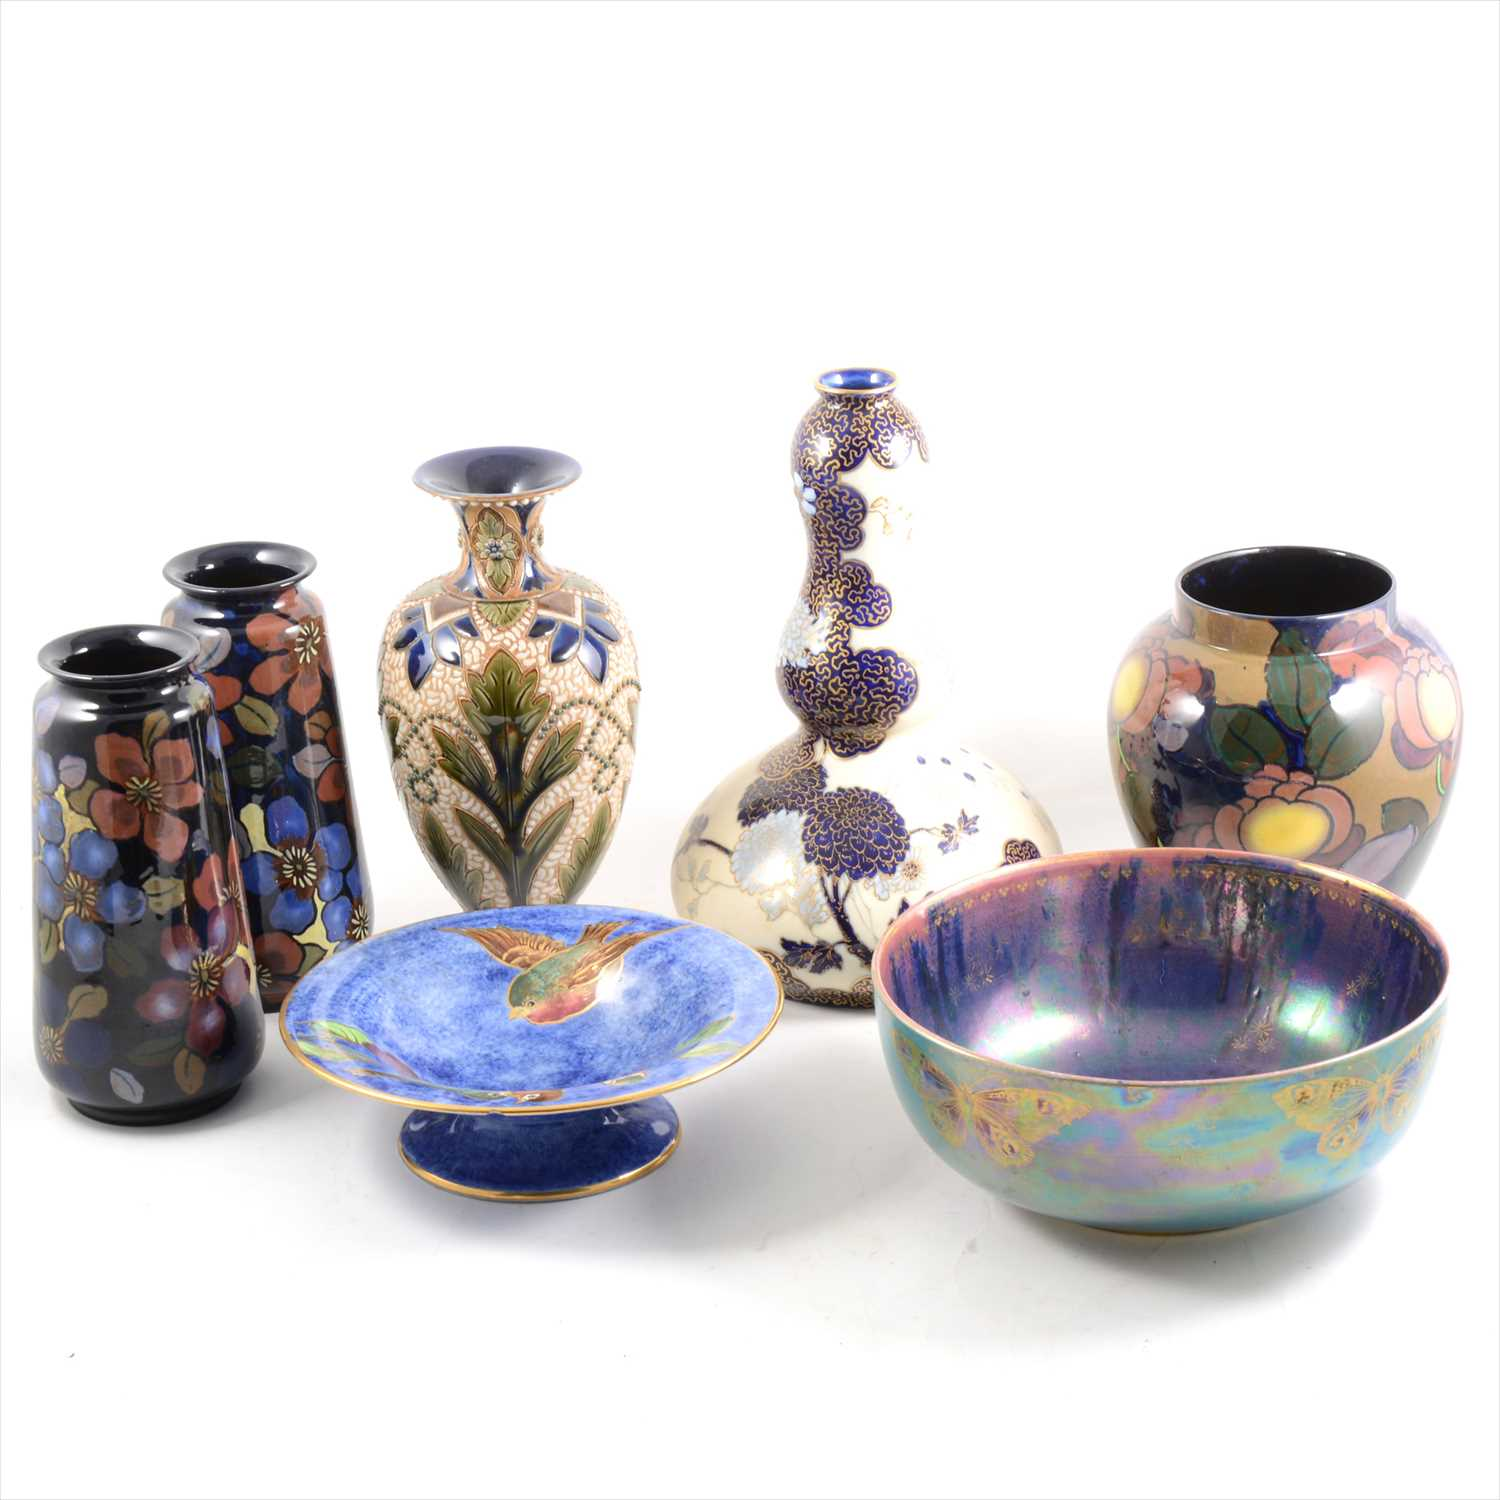 Lot 14-A pair of Royal Stanley 'Jacobean' pattern vases, and other Art Pottery ware